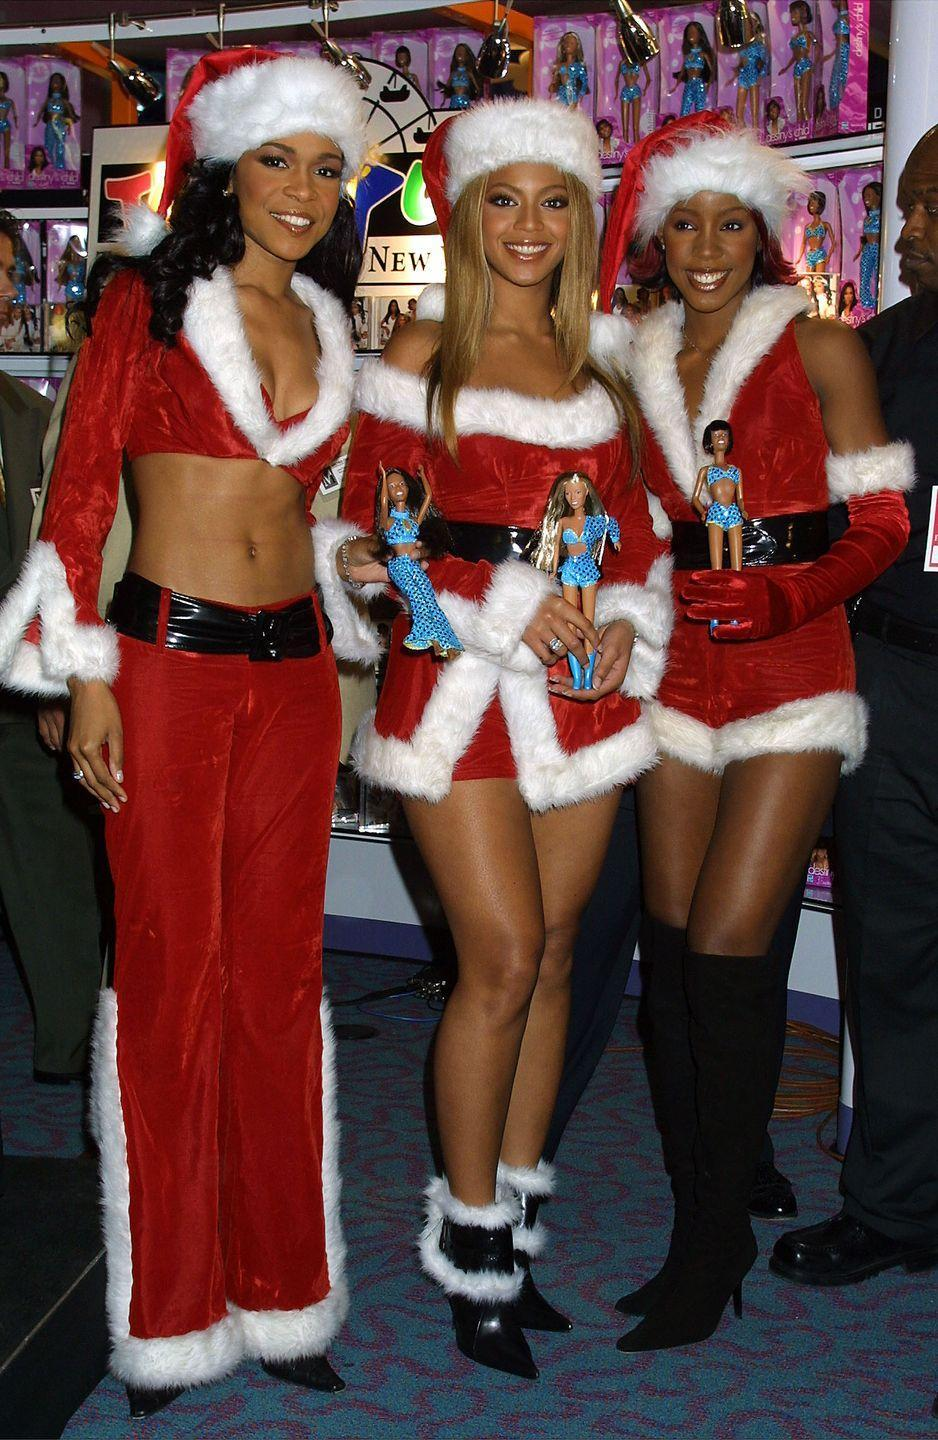 """<p>Back when Beyoncé was just one member of Destiny's Child, this shortened version of the Christmas classic blared from boomboxes everywhere. </p><p><a class=""""link rapid-noclick-resp"""" href=""""https://www.amazon.com/8-Days-Christmas-Destinys-Child/dp/B00138F0QC?tag=syn-yahoo-20&ascsubtag=%5Bartid%7C10055.g.2680%5Bsrc%7Cyahoo-us"""" rel=""""nofollow noopener"""" target=""""_blank"""" data-ylk=""""slk:AMAZON"""">AMAZON</a> <a class=""""link rapid-noclick-resp"""" href=""""https://go.redirectingat.com?id=74968X1596630&url=https%3A%2F%2Fmusic.apple.com%2Fus%2Falbum%2F8-days-of-christmas%2F192877331&sref=https%3A%2F%2Fwww.goodhousekeeping.com%2Fholidays%2Fchristmas-ideas%2Fg2680%2Fchristmas-songs%2F"""" rel=""""nofollow noopener"""" target=""""_blank"""" data-ylk=""""slk:ITUNES"""">ITUNES</a></p><p><strong>RELATED: </strong><a href=""""https://www.goodhousekeeping.com/holidays/christmas-ideas/how-to/g2203/christmas-decoration-ideas/"""" rel=""""nofollow noopener"""" target=""""_blank"""" data-ylk=""""slk:70+ Christmas Decorating Ideas for a Joyful Holiday Home"""" class=""""link rapid-noclick-resp"""">70+ Christmas Decorating Ideas for a Joyful Holiday Home</a></p>"""